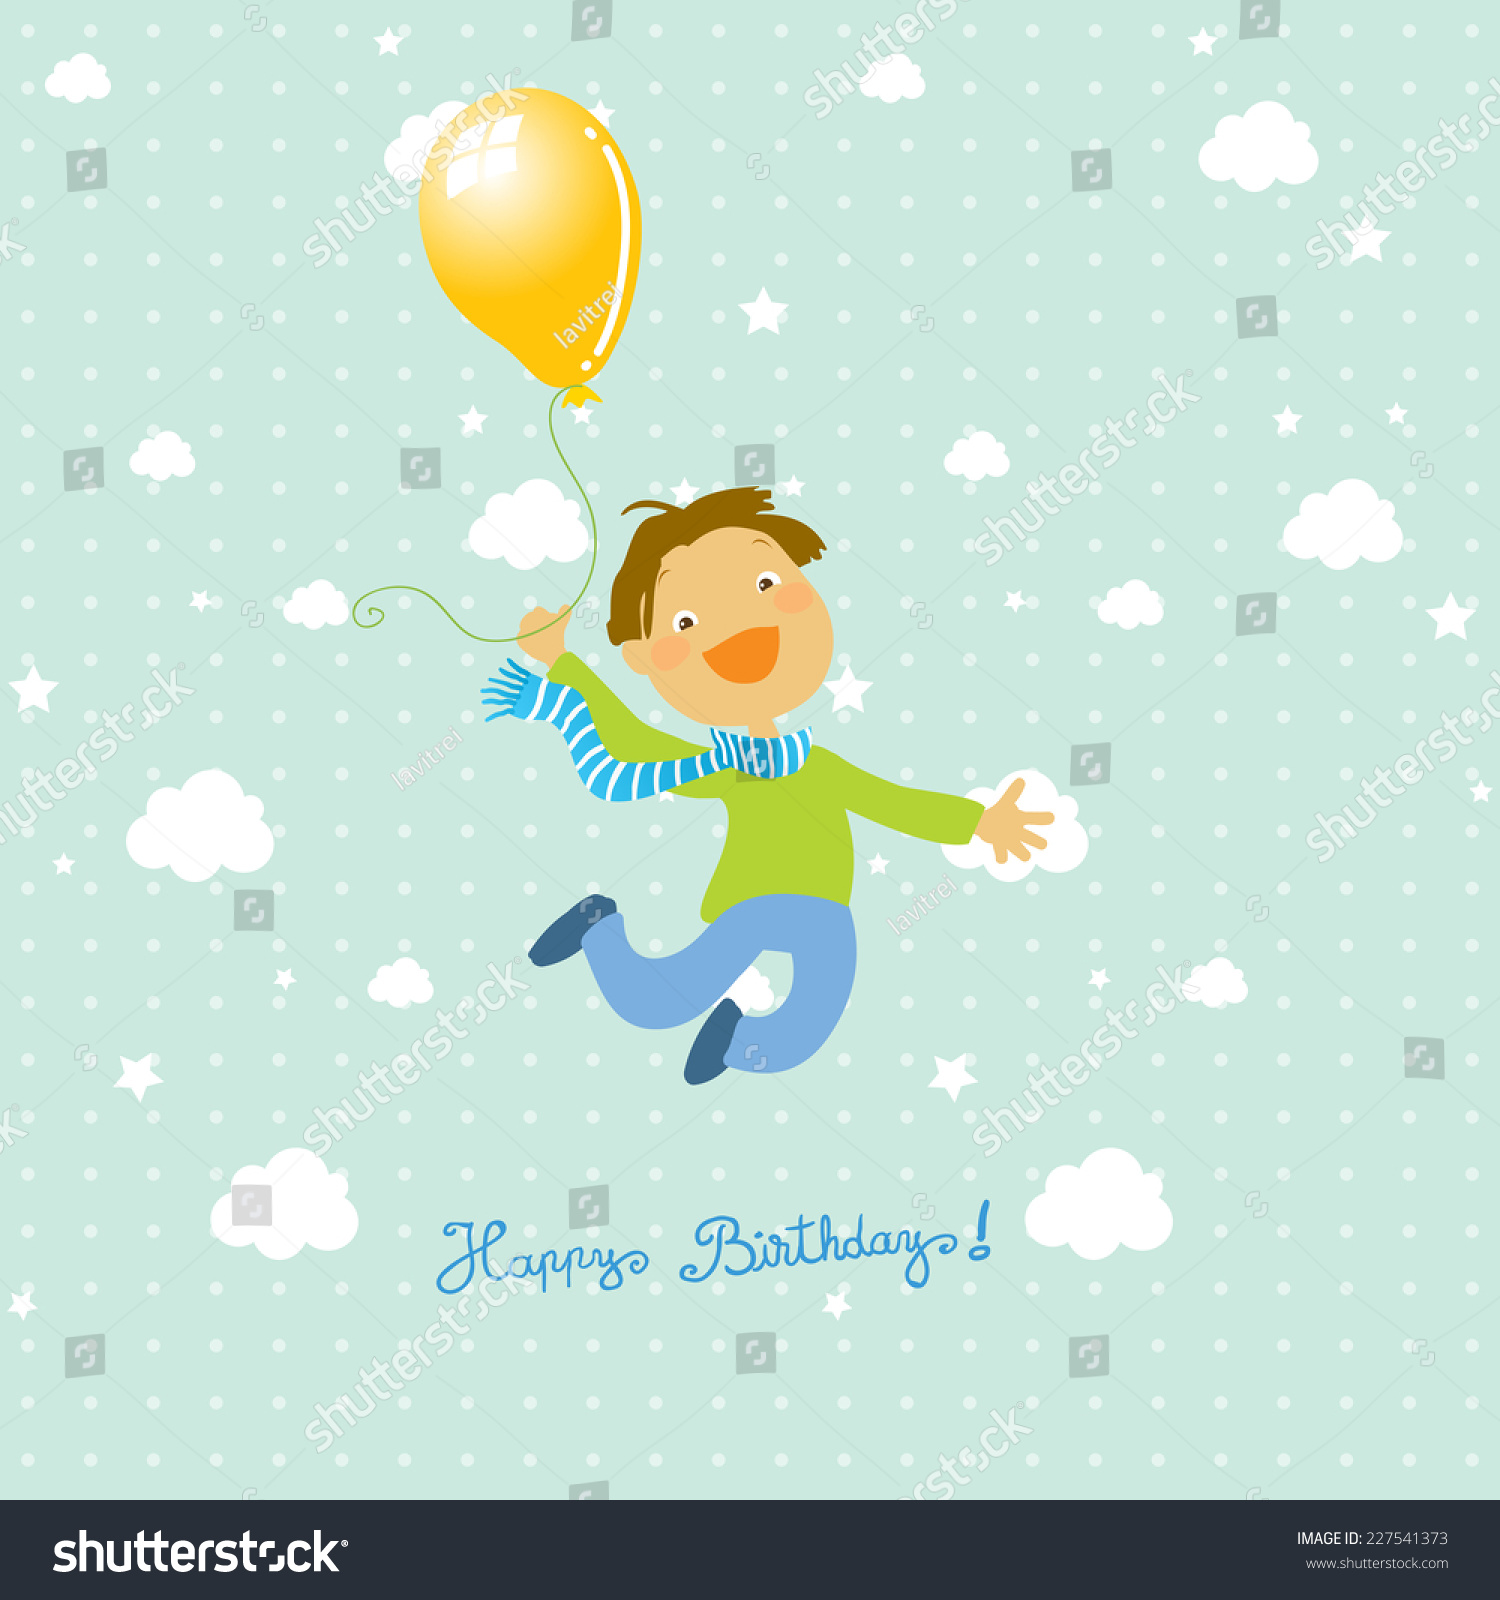 Happy Birthday Card Child Image collections Free Birthday Cards